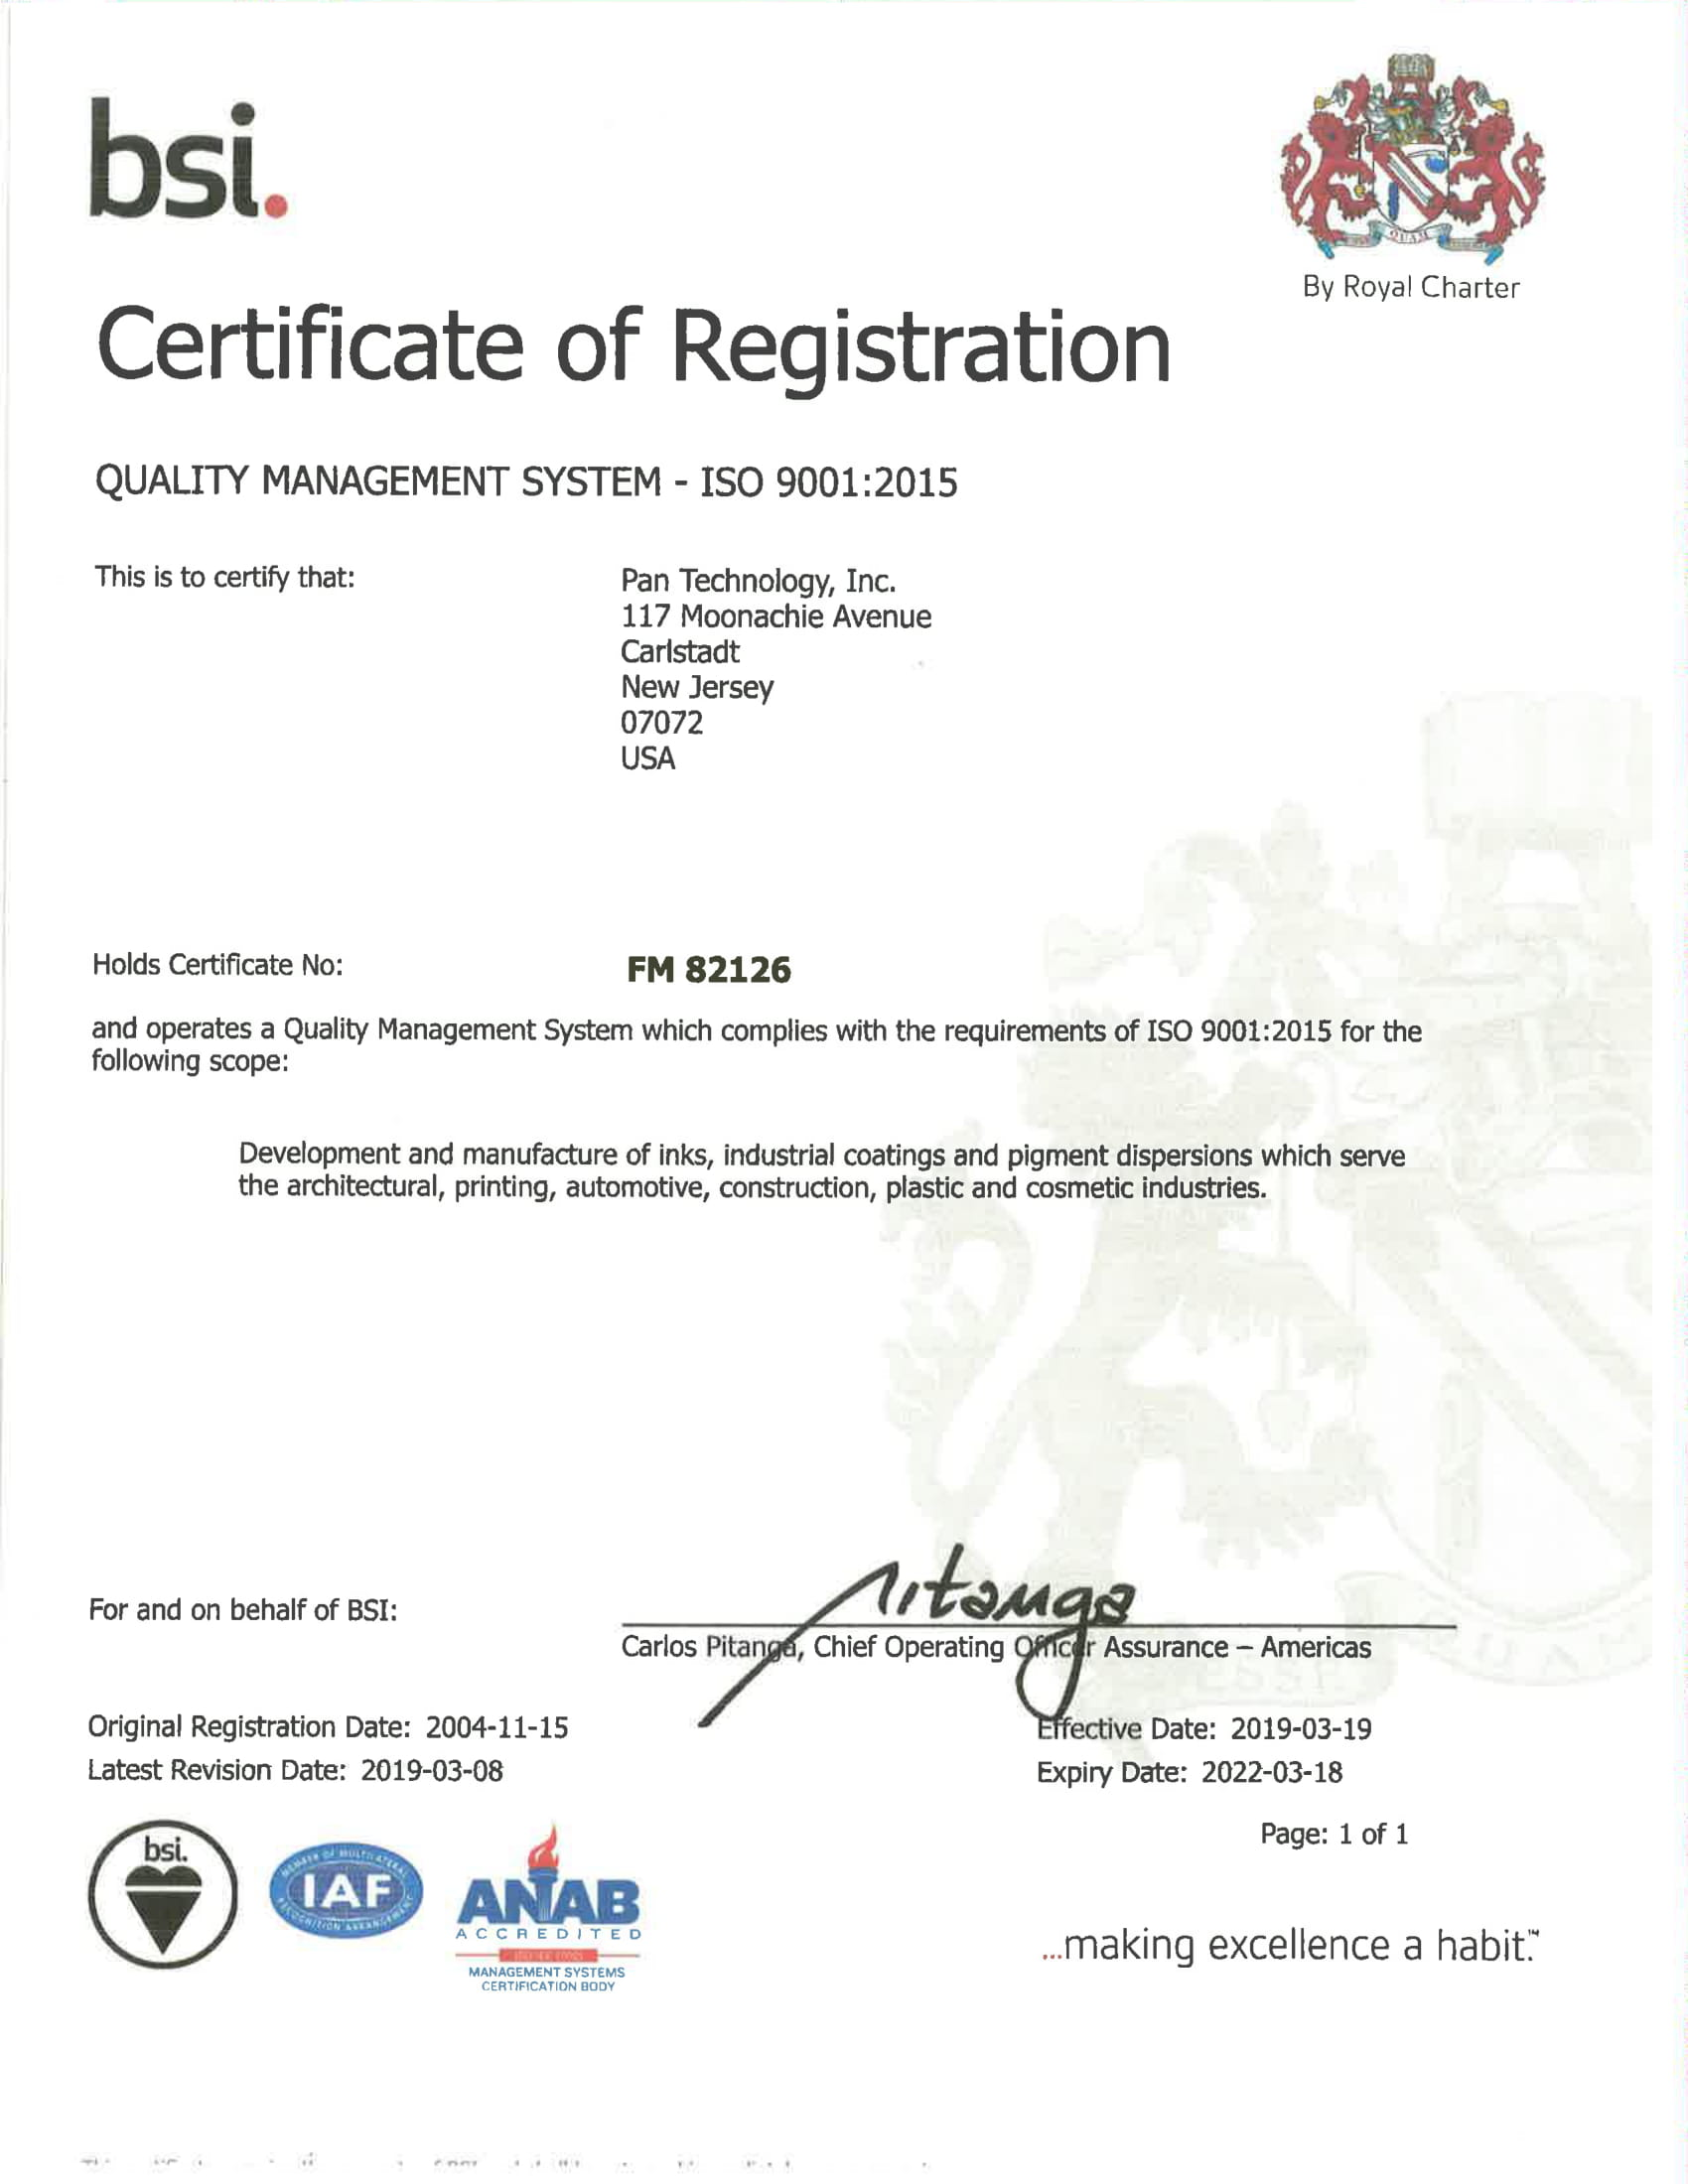 PAN Technology is a certified ISO 900:2008 supplier.